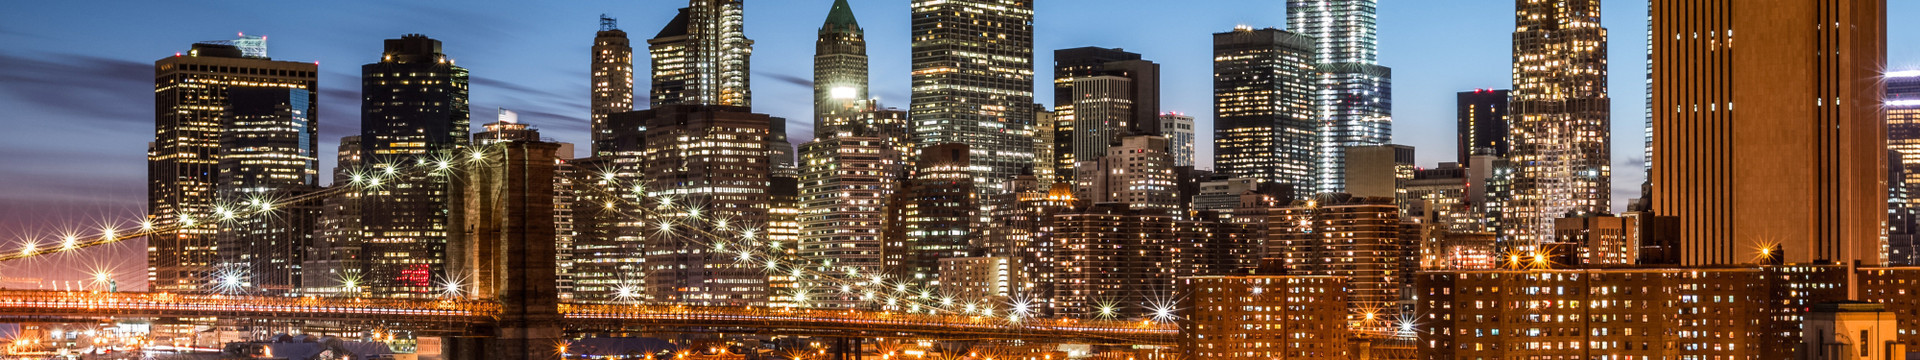 Corporate Incentive Group Hotel Rates In NYC | NYC Skyline at Night